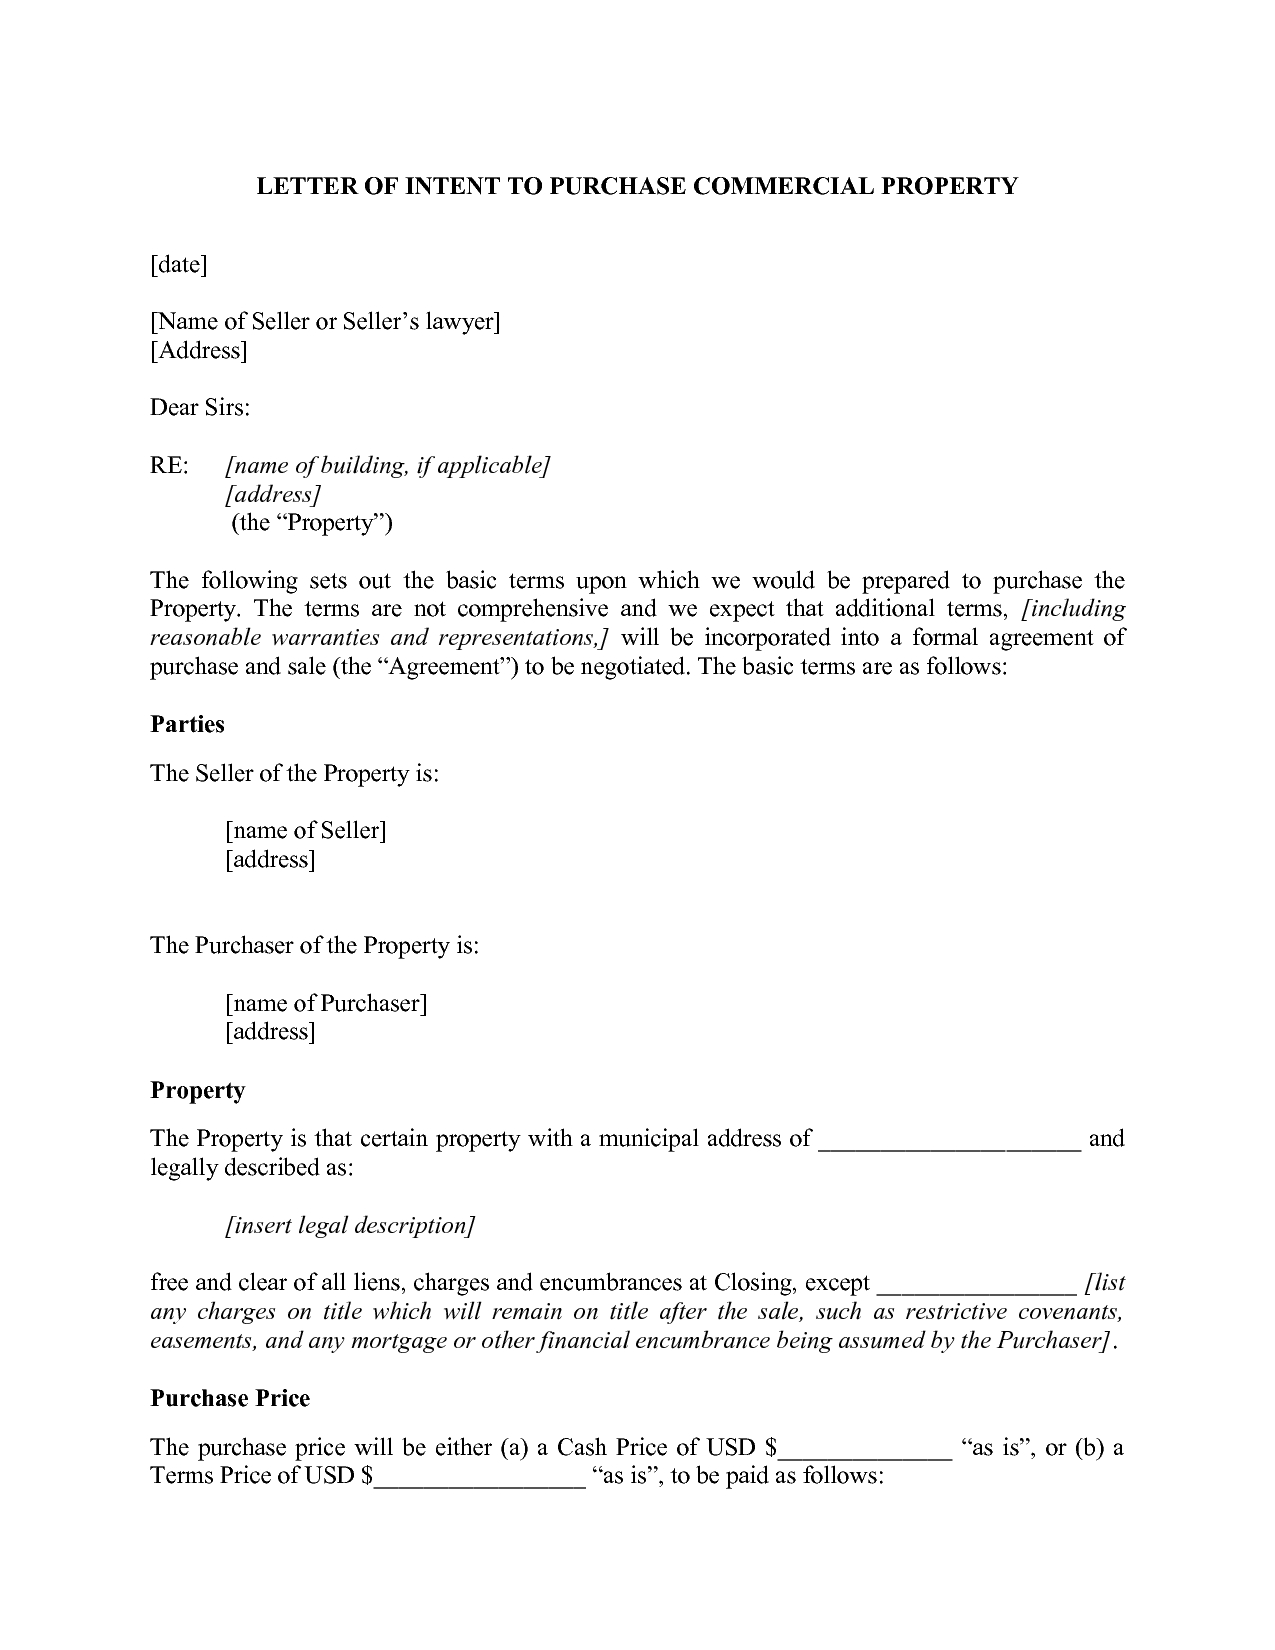 Letter Of Intent to Lease Commercial Property Template - Letter Intent Real  Estate Lease Hd to